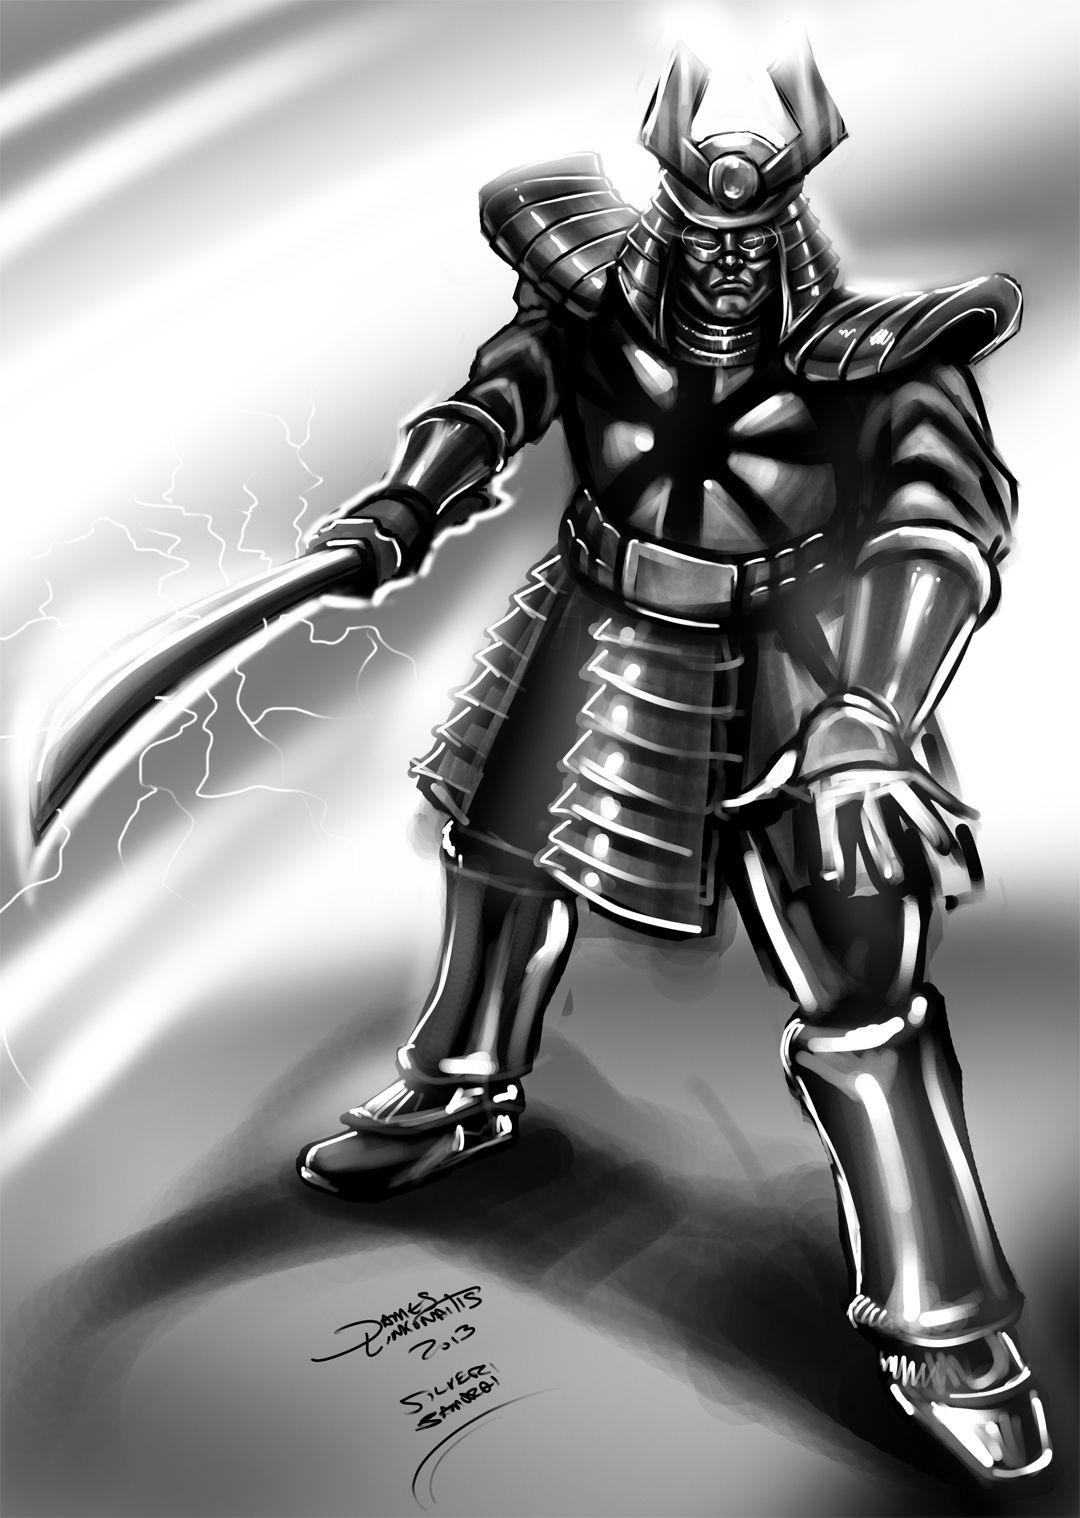 1080x1518 Silver Samurai (DSC) by jameslink on DeviantArt